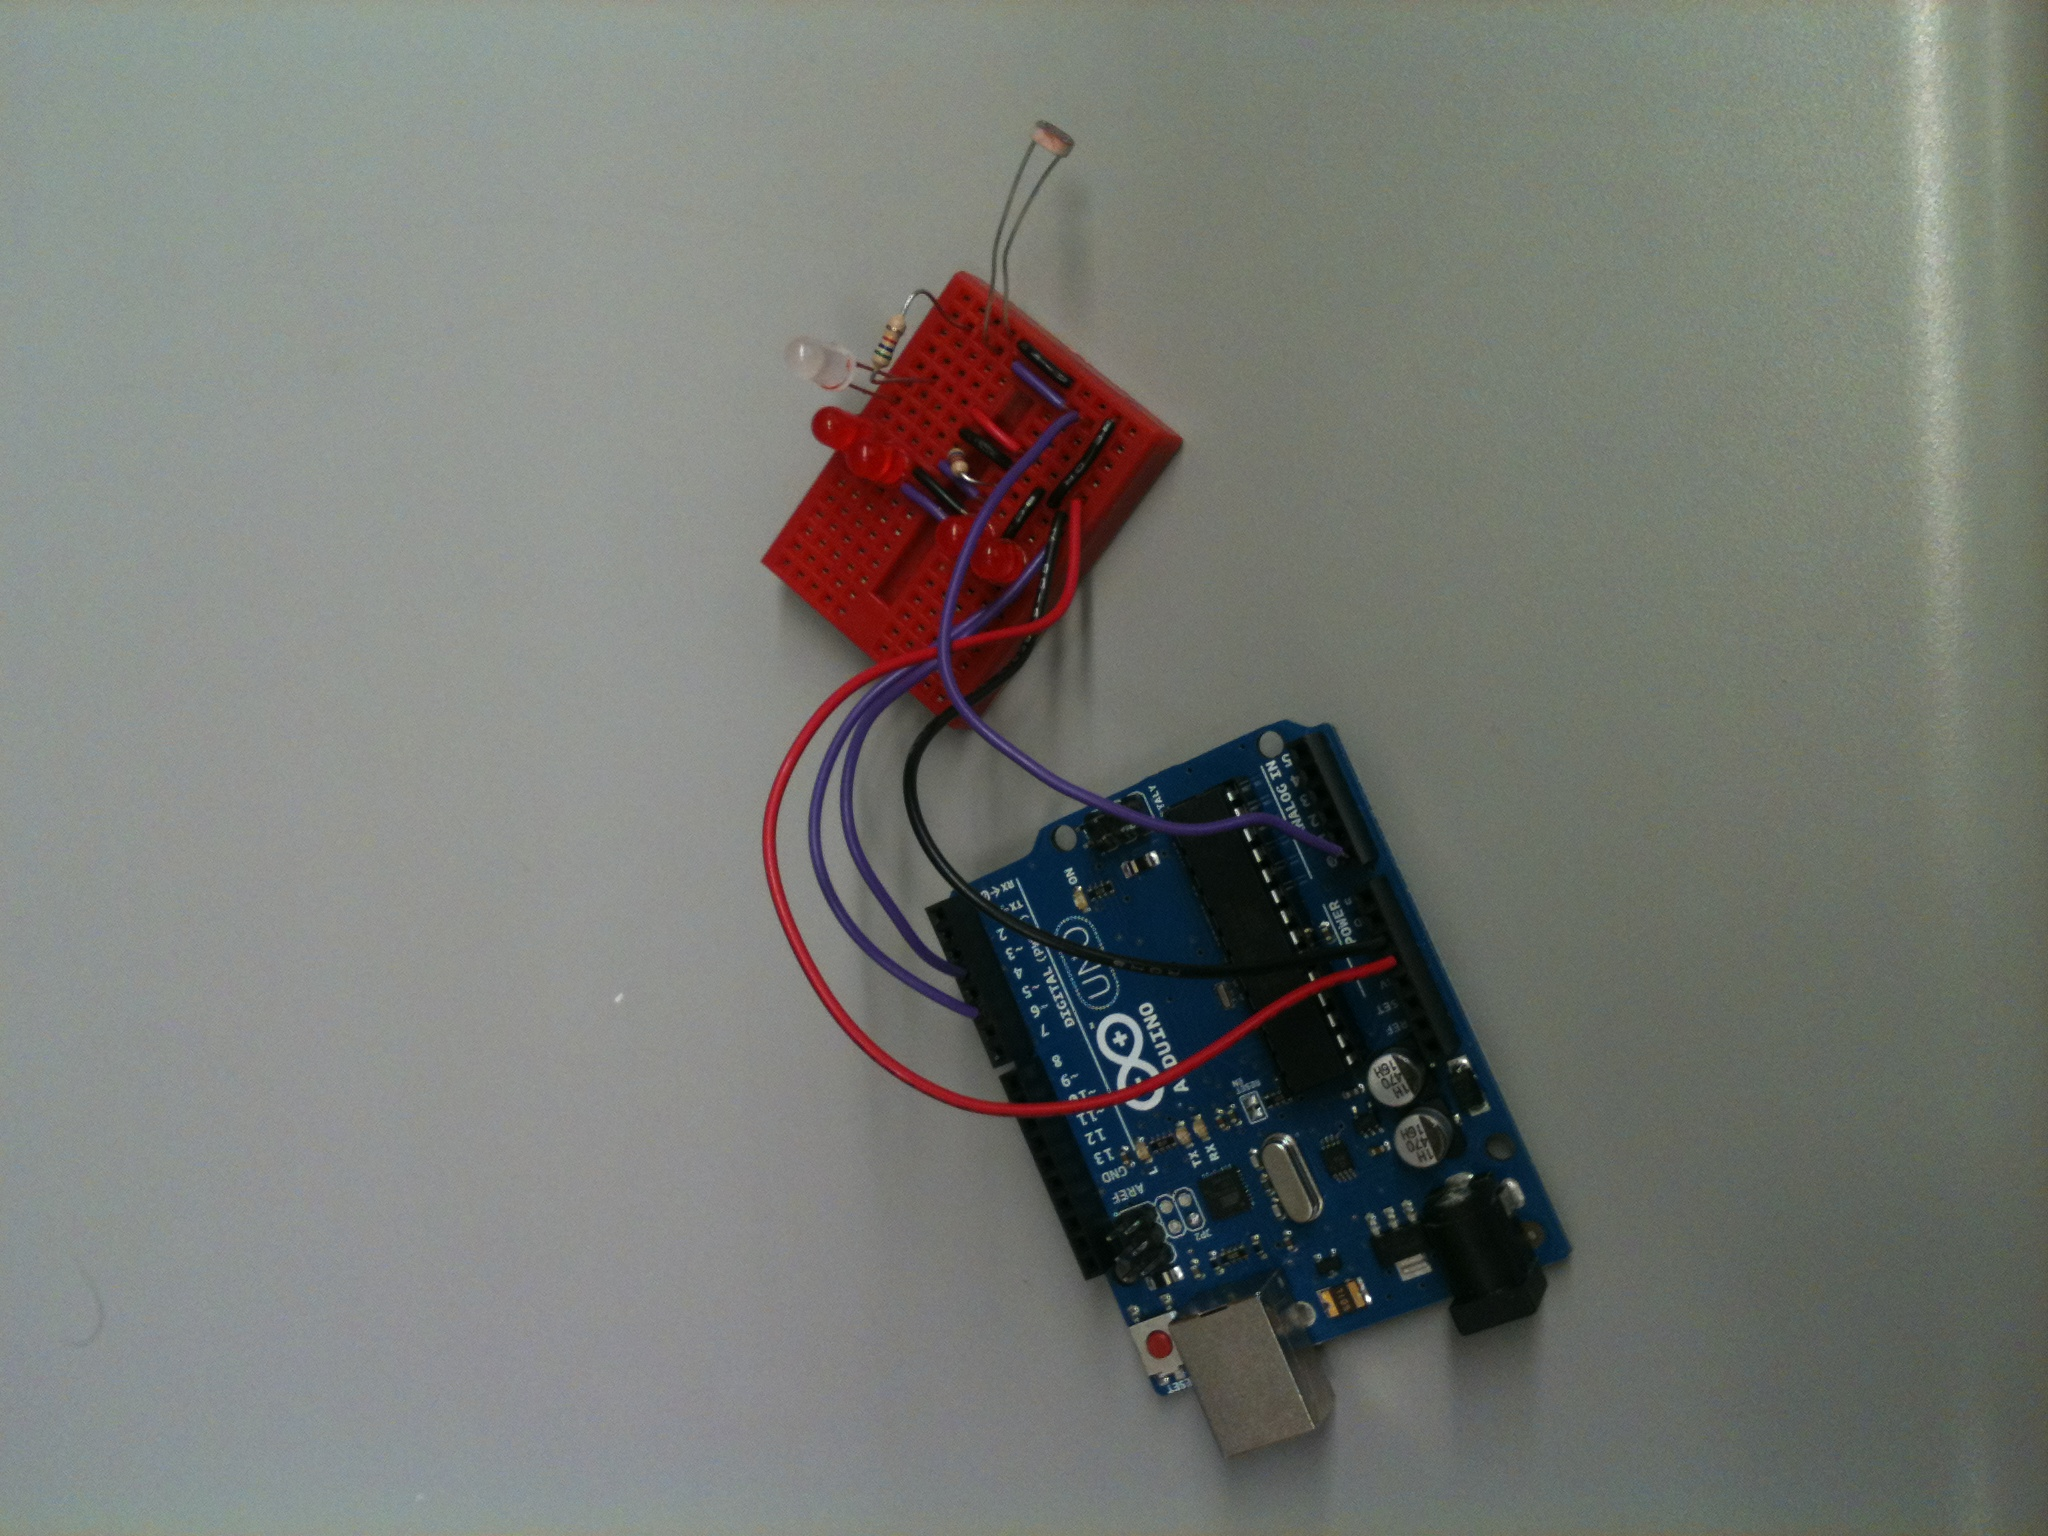 Arduino and Breadboard inside the Cube